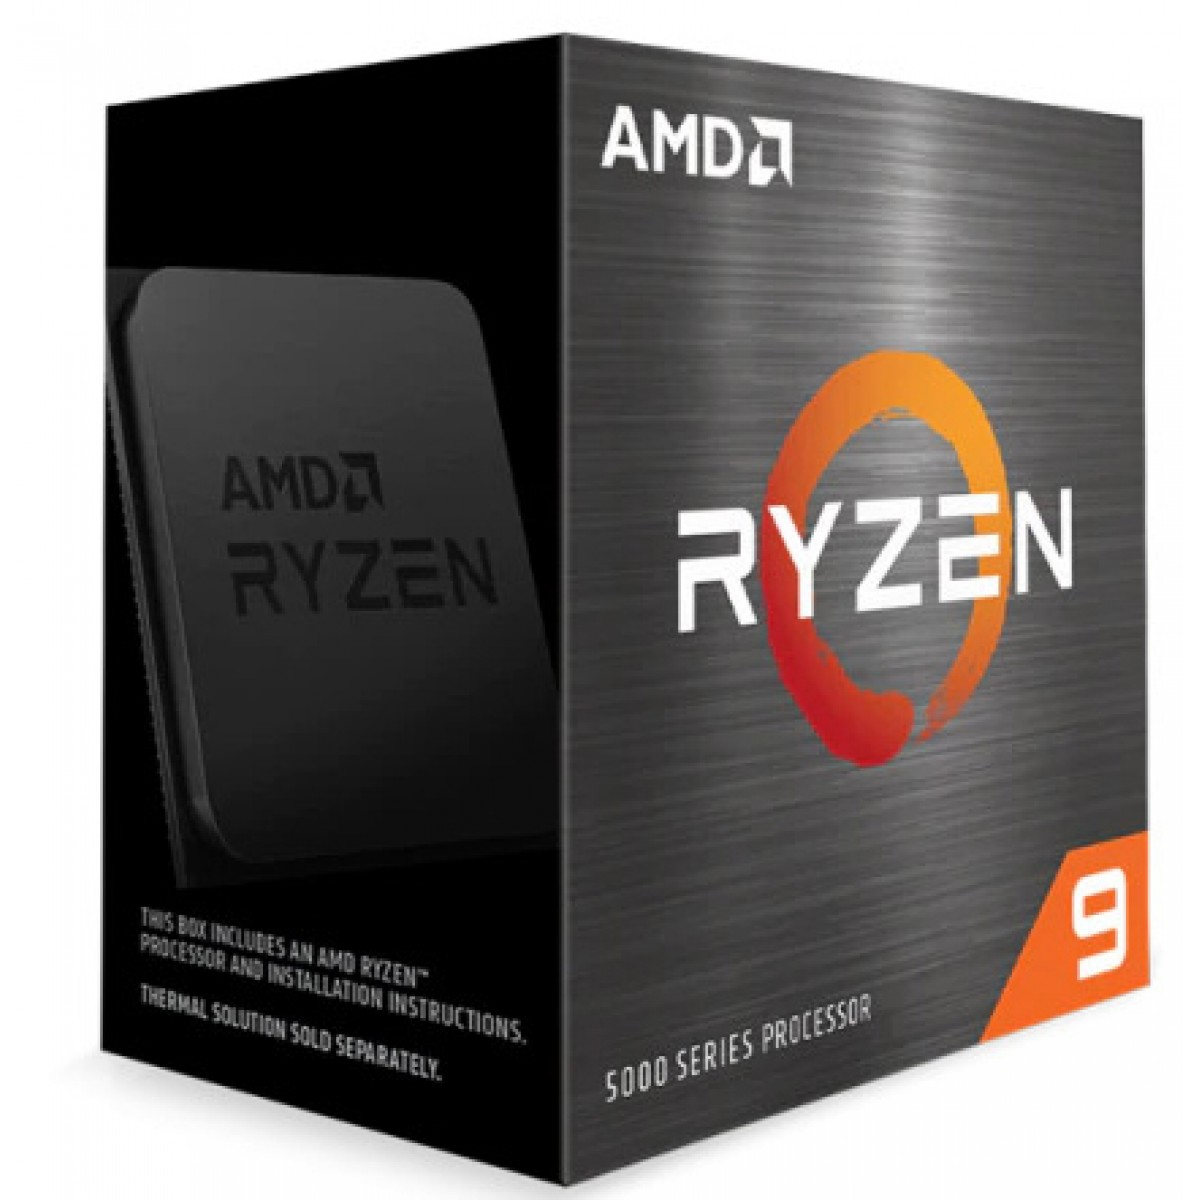 Processador AMD Ryzen 9 5950X 3.4GHz (4.9GHz Turbo), 16-Cores 32-Threads, AM4, Sem Cooler, 100-100000059WOF